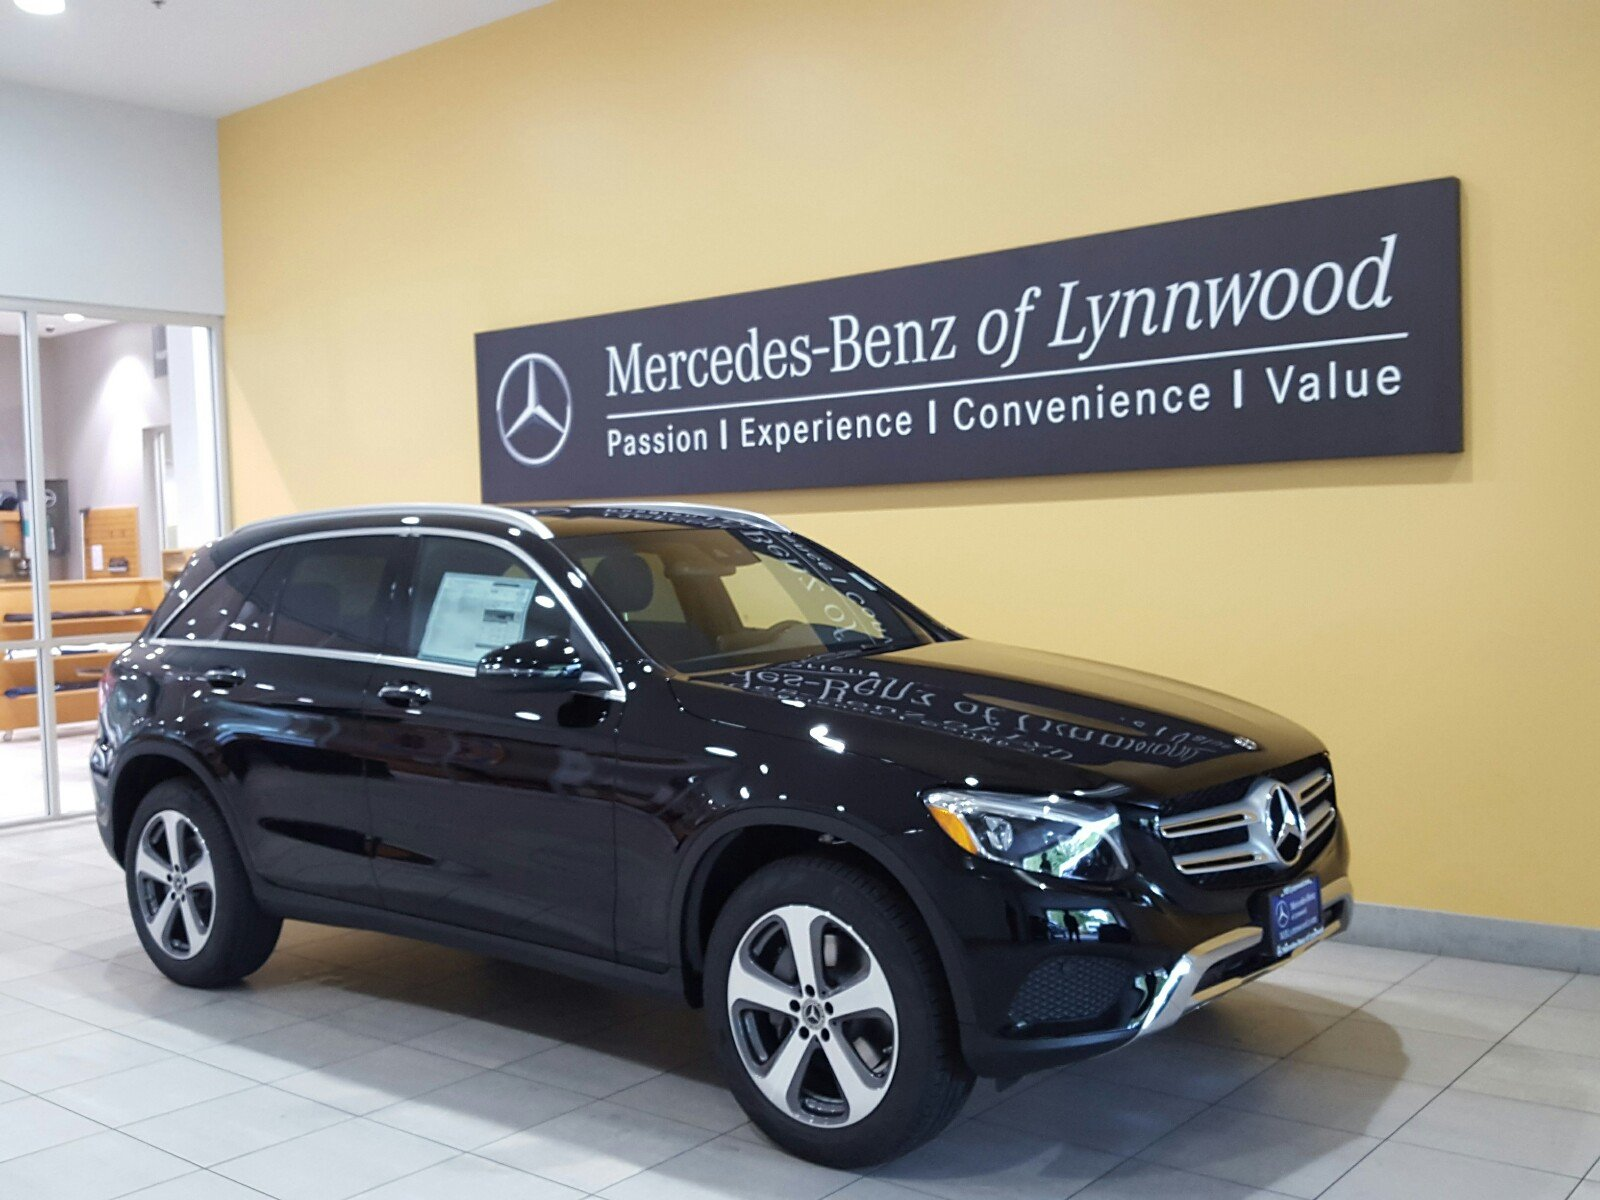 New 2018 mercedes benz glc glc 300 4matic suv in lynnwood for Mercedes benz glc 300 accessories